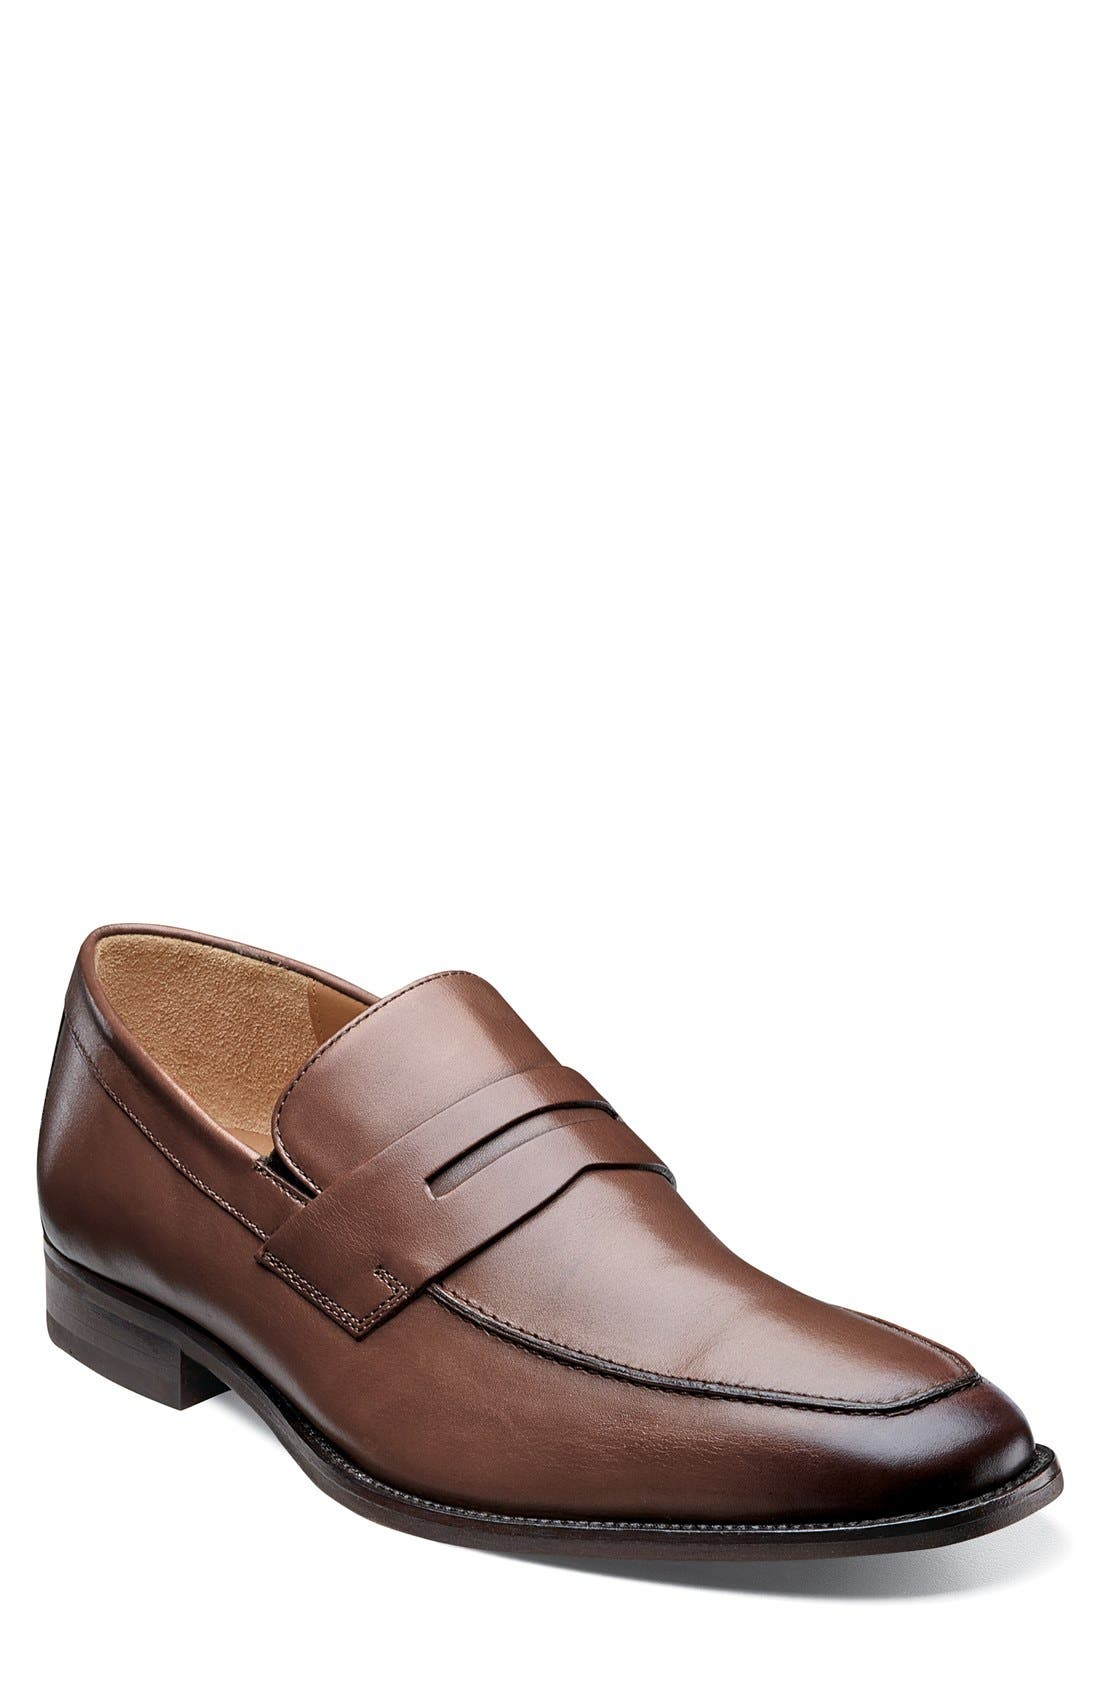 'Sabato' Penny Loafer,                             Main thumbnail 2, color,